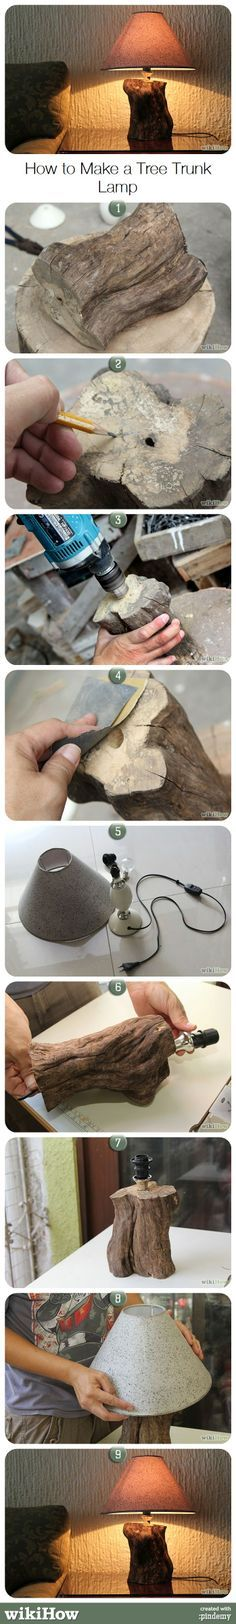 How to Make a Tree Trunk Lamp #Wood #WoodLamp #DeskLamp  @idlights